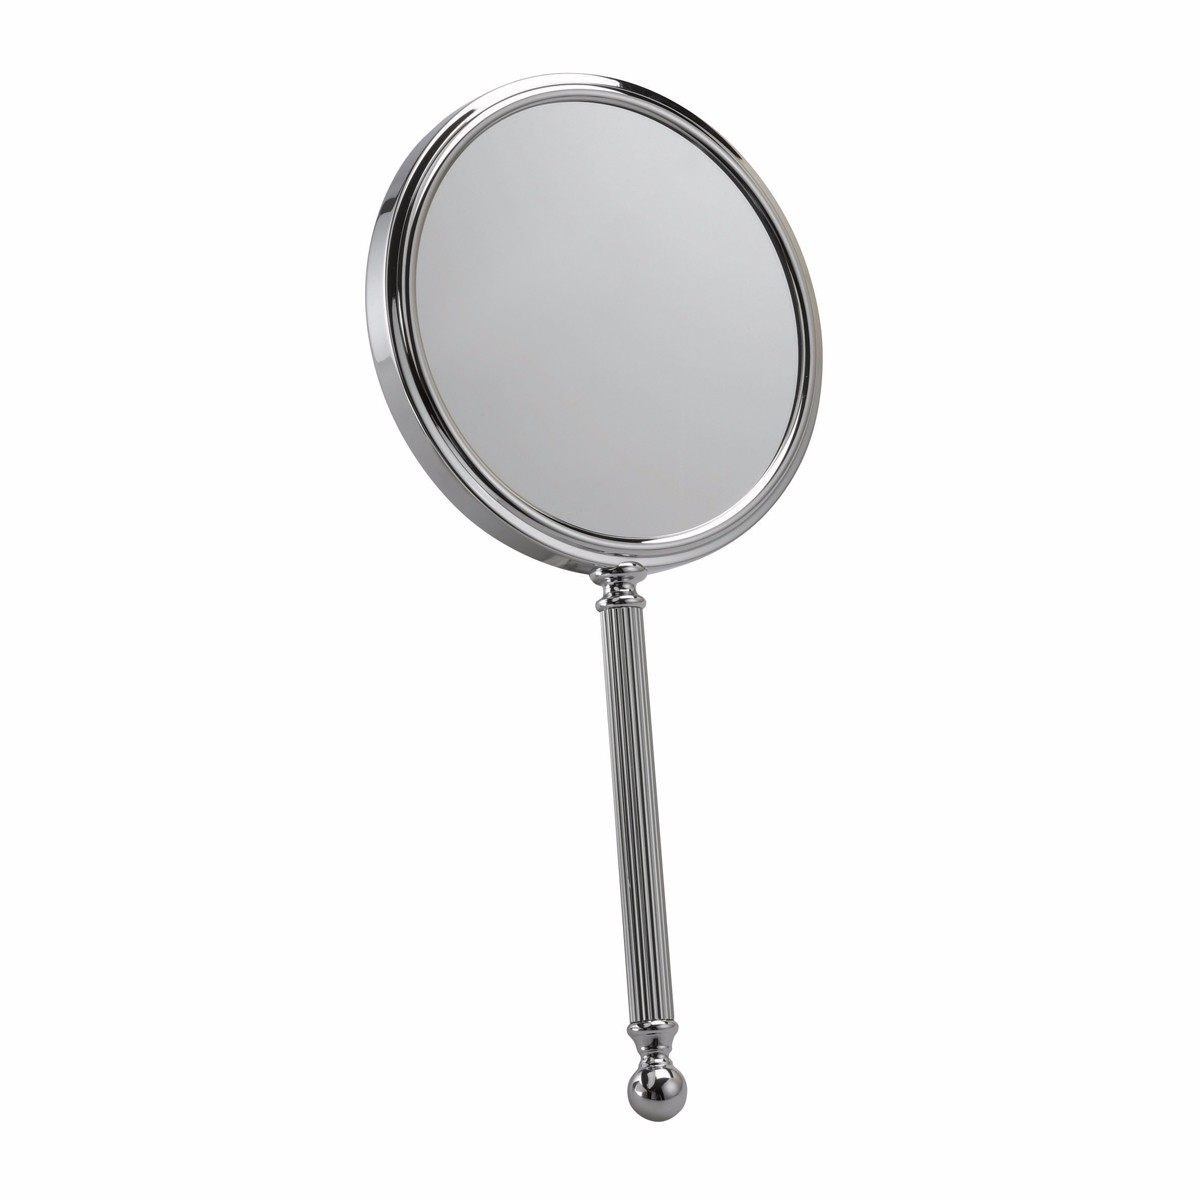 512 13C - Hand Held Chrome Mirror 5x Magnification 'Audrey' By Fmg - 512/13CHR